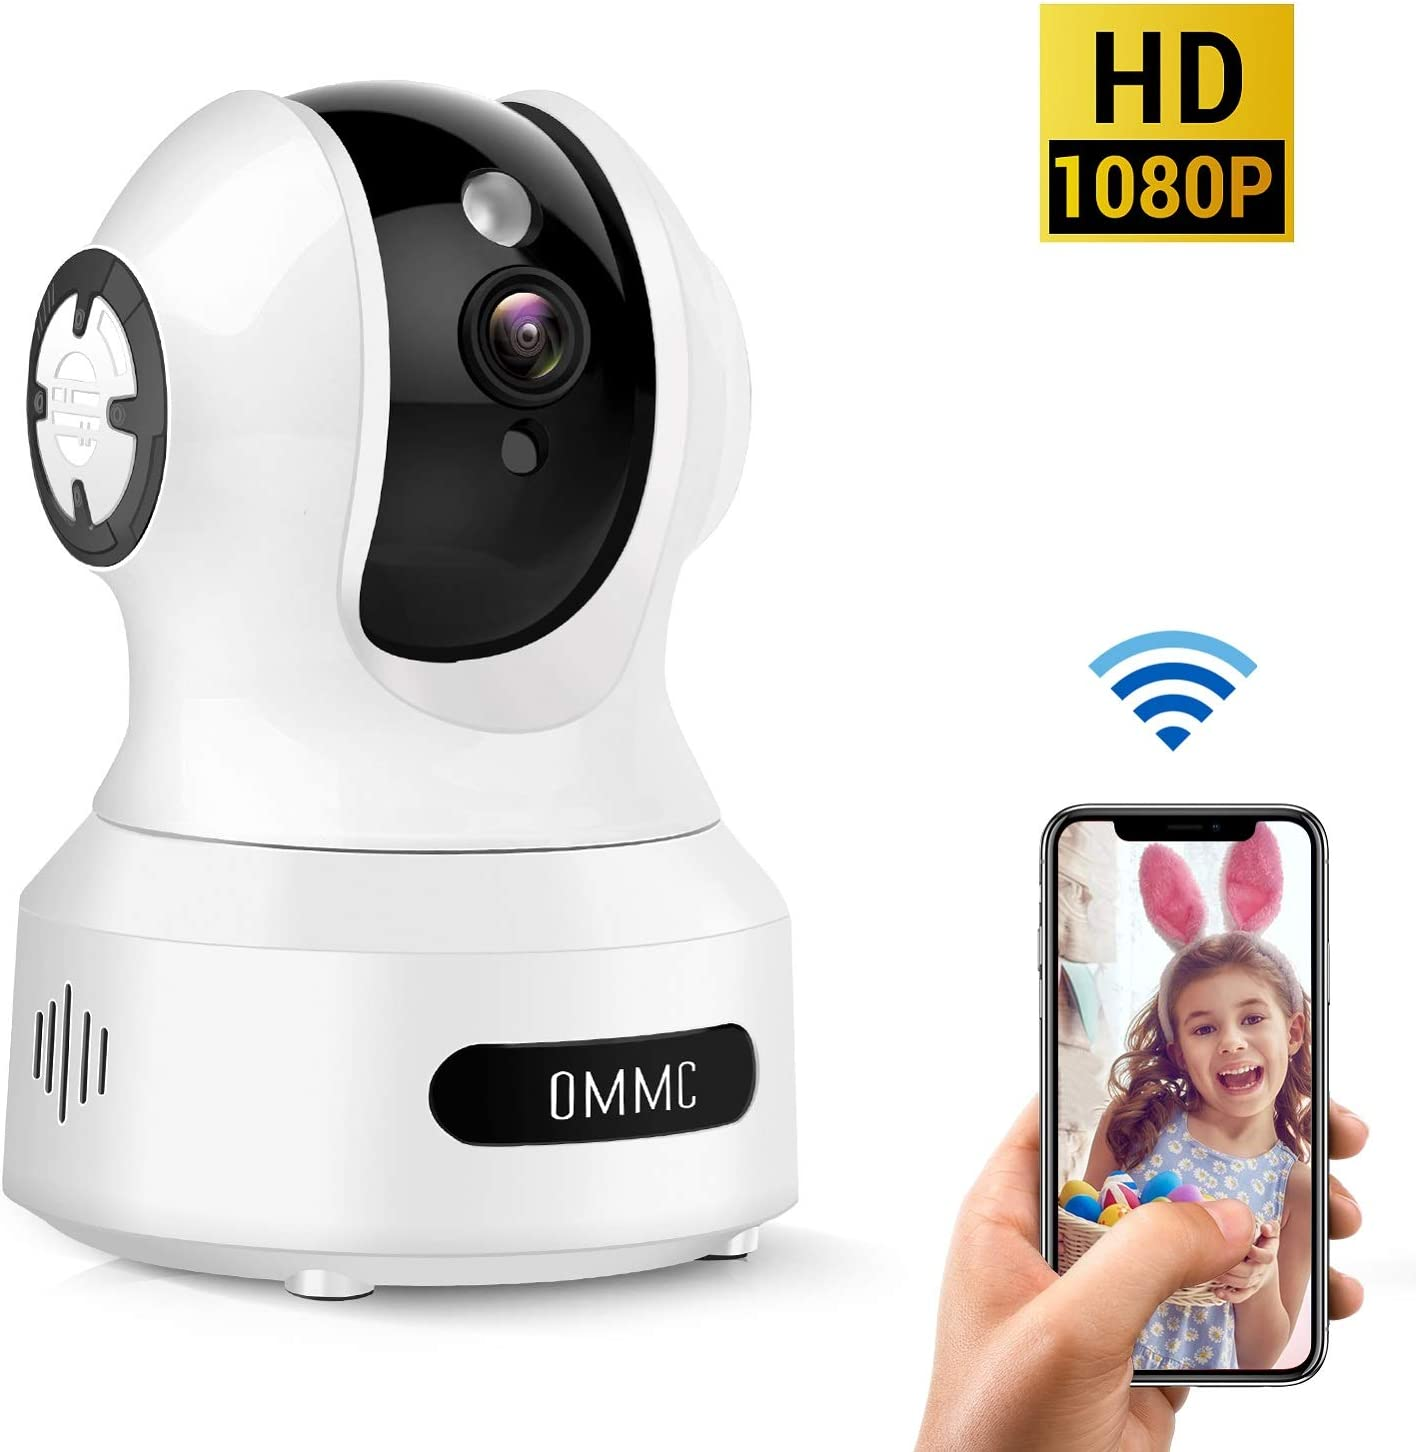 Baby Monitor, OMMC Wireless Home Security Camera 1080P IP Camera with Night Vision 2-Way Audio Motion Detection, Works with Alexa